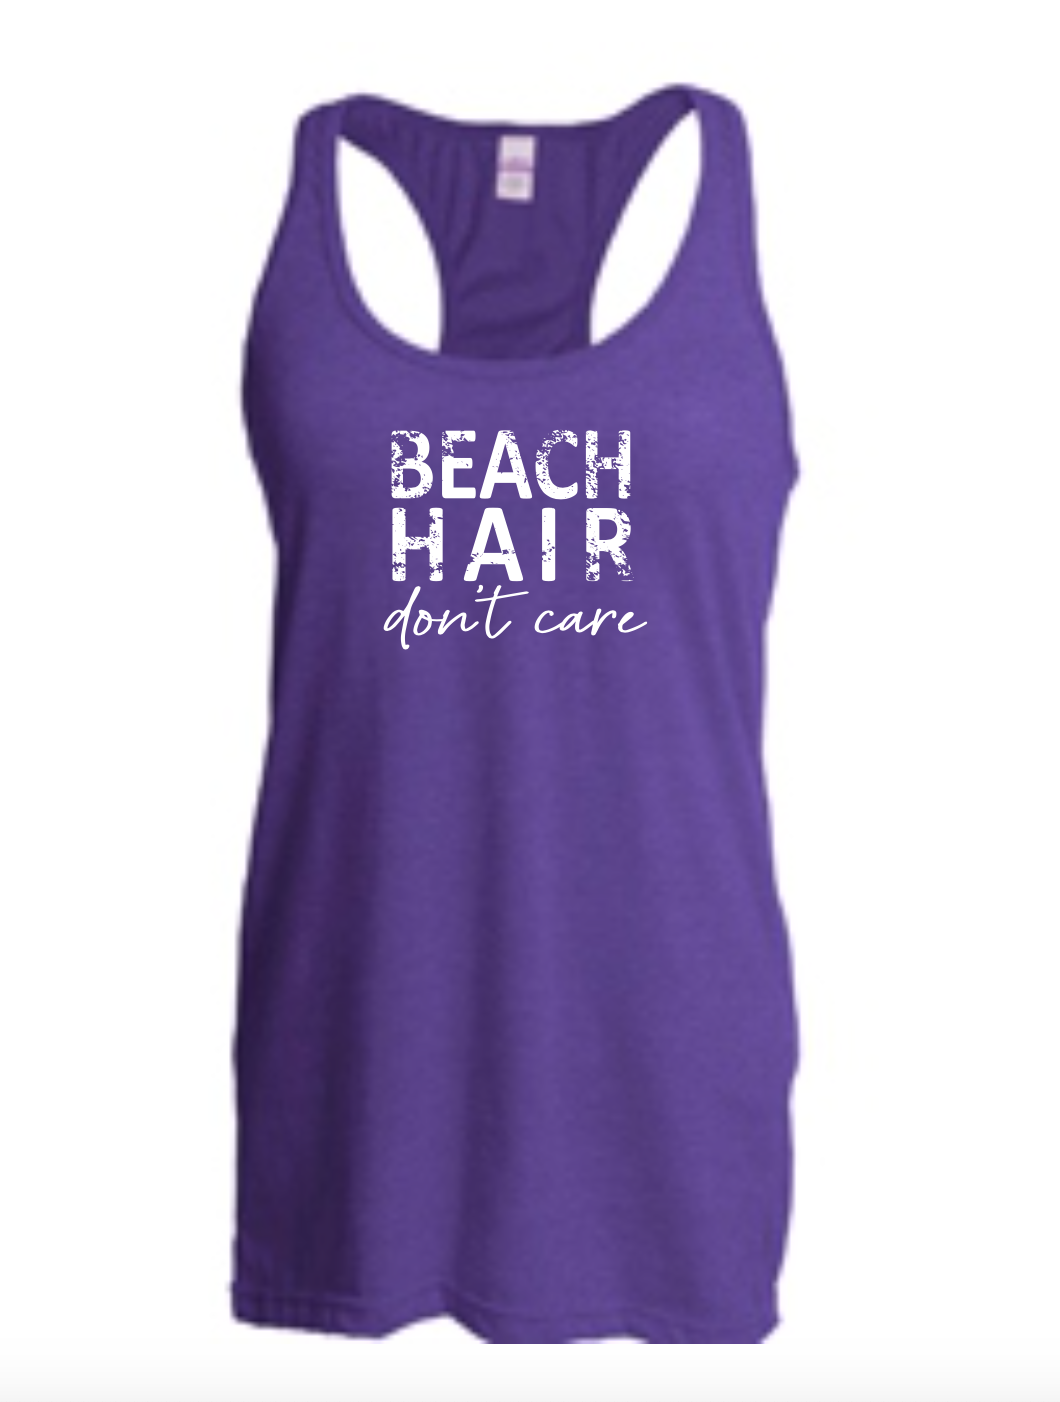 Beach Hair Don't Care (Racerback Tank)